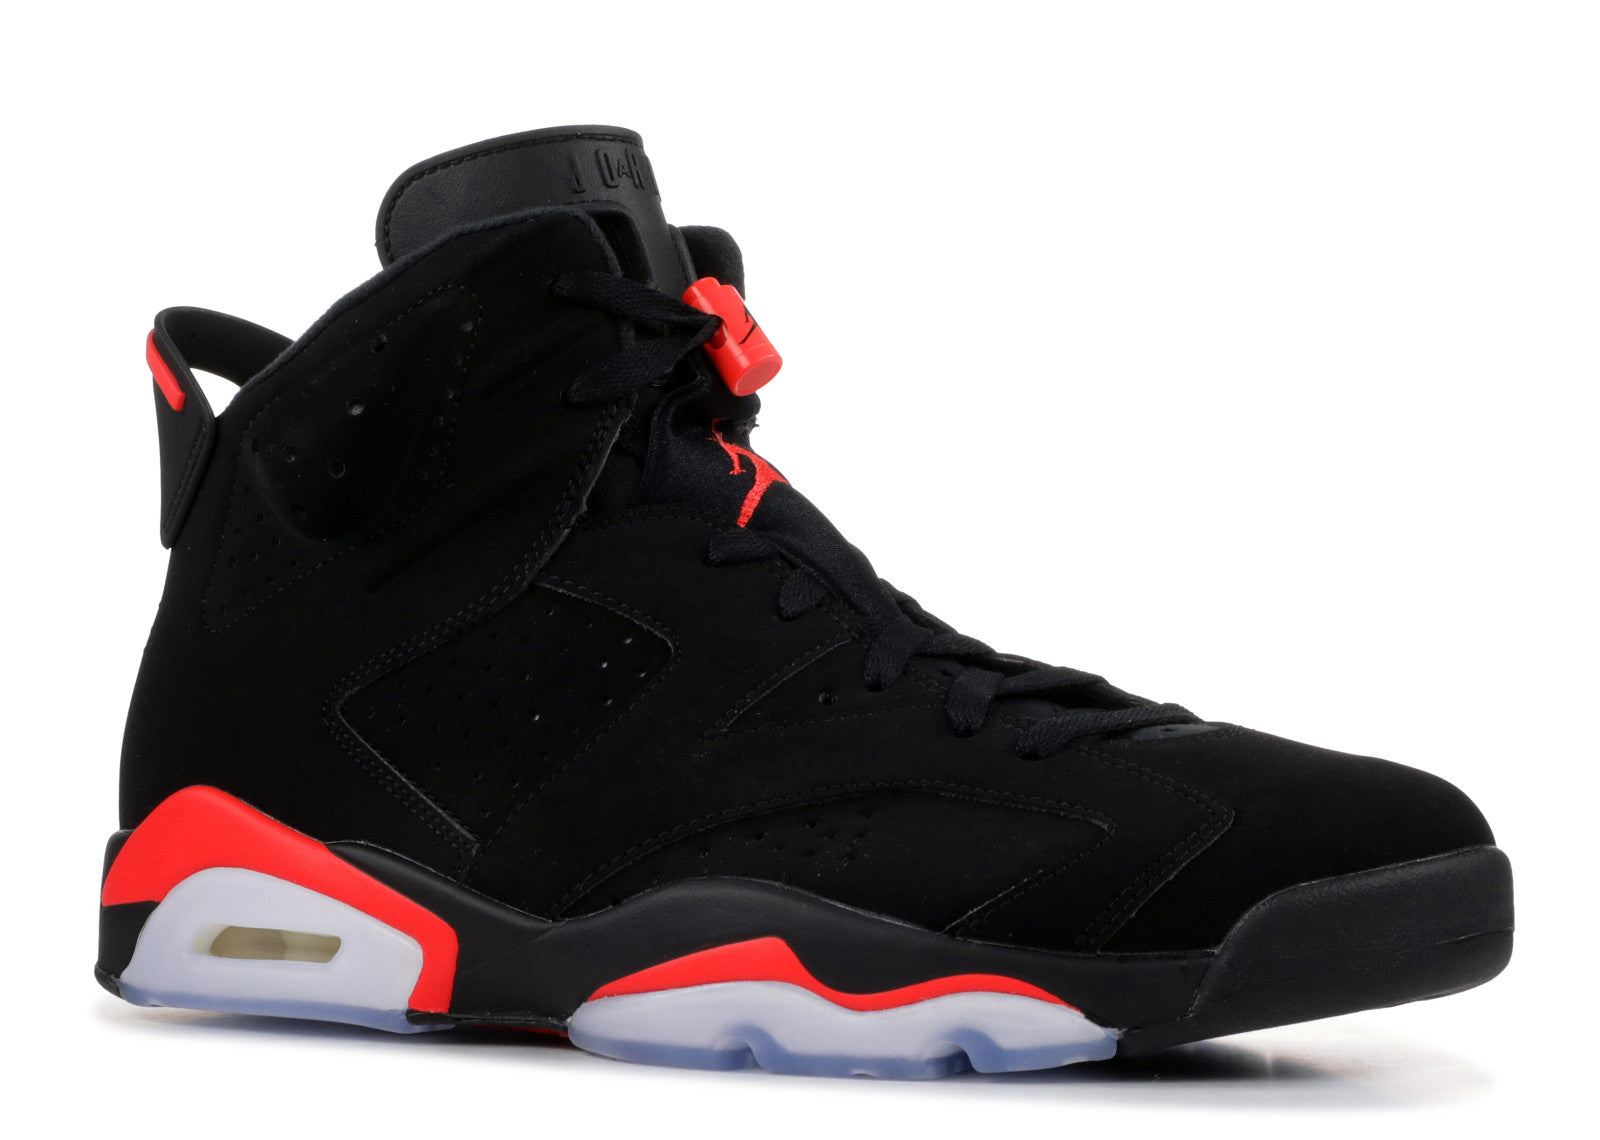 Nike Air Jordan 6 Retro 'Black Infrared' 2019